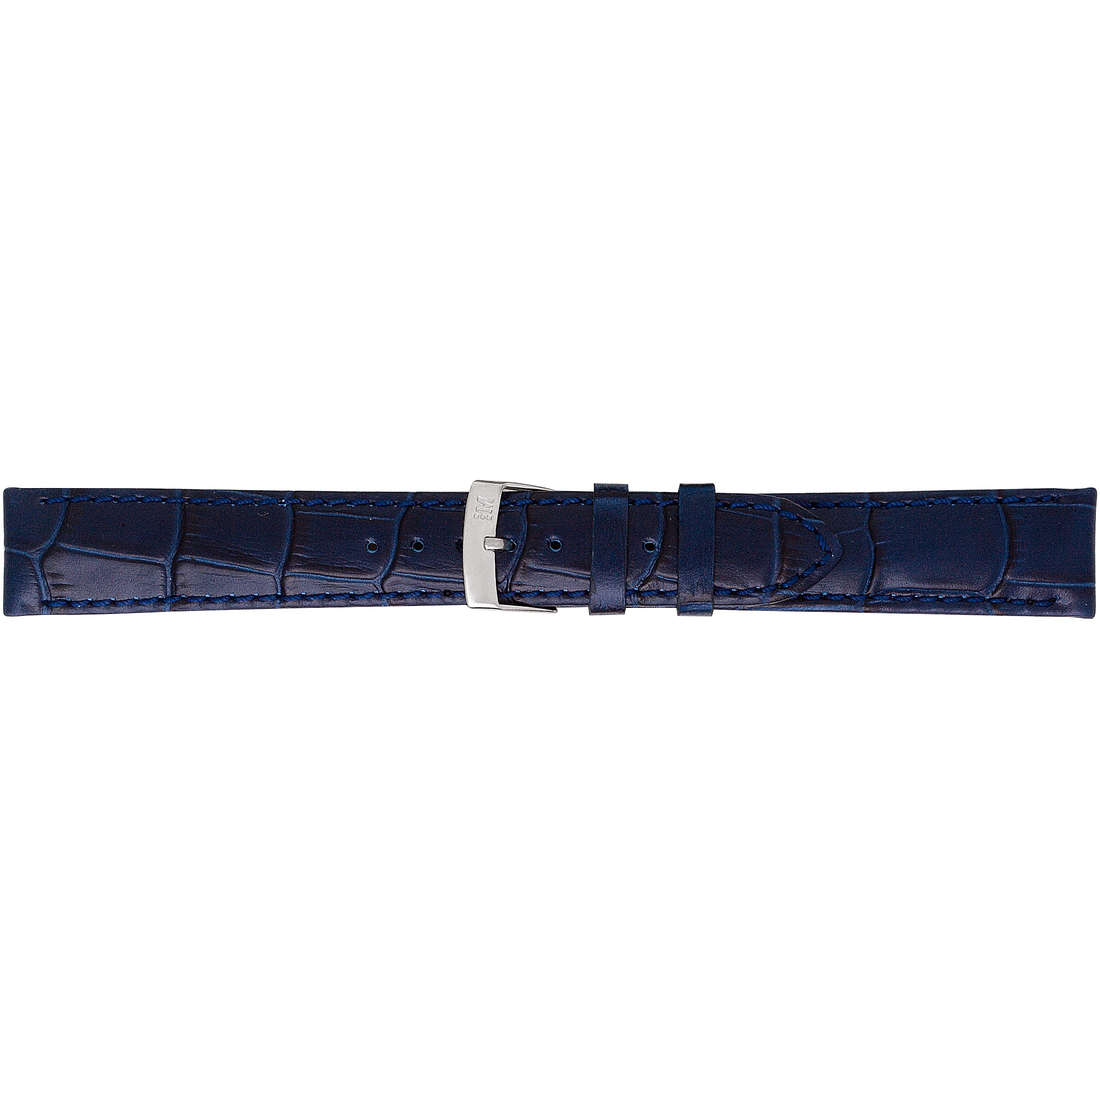 watch watch bands watch straps man Morellato Performance A01X2704656062CR18